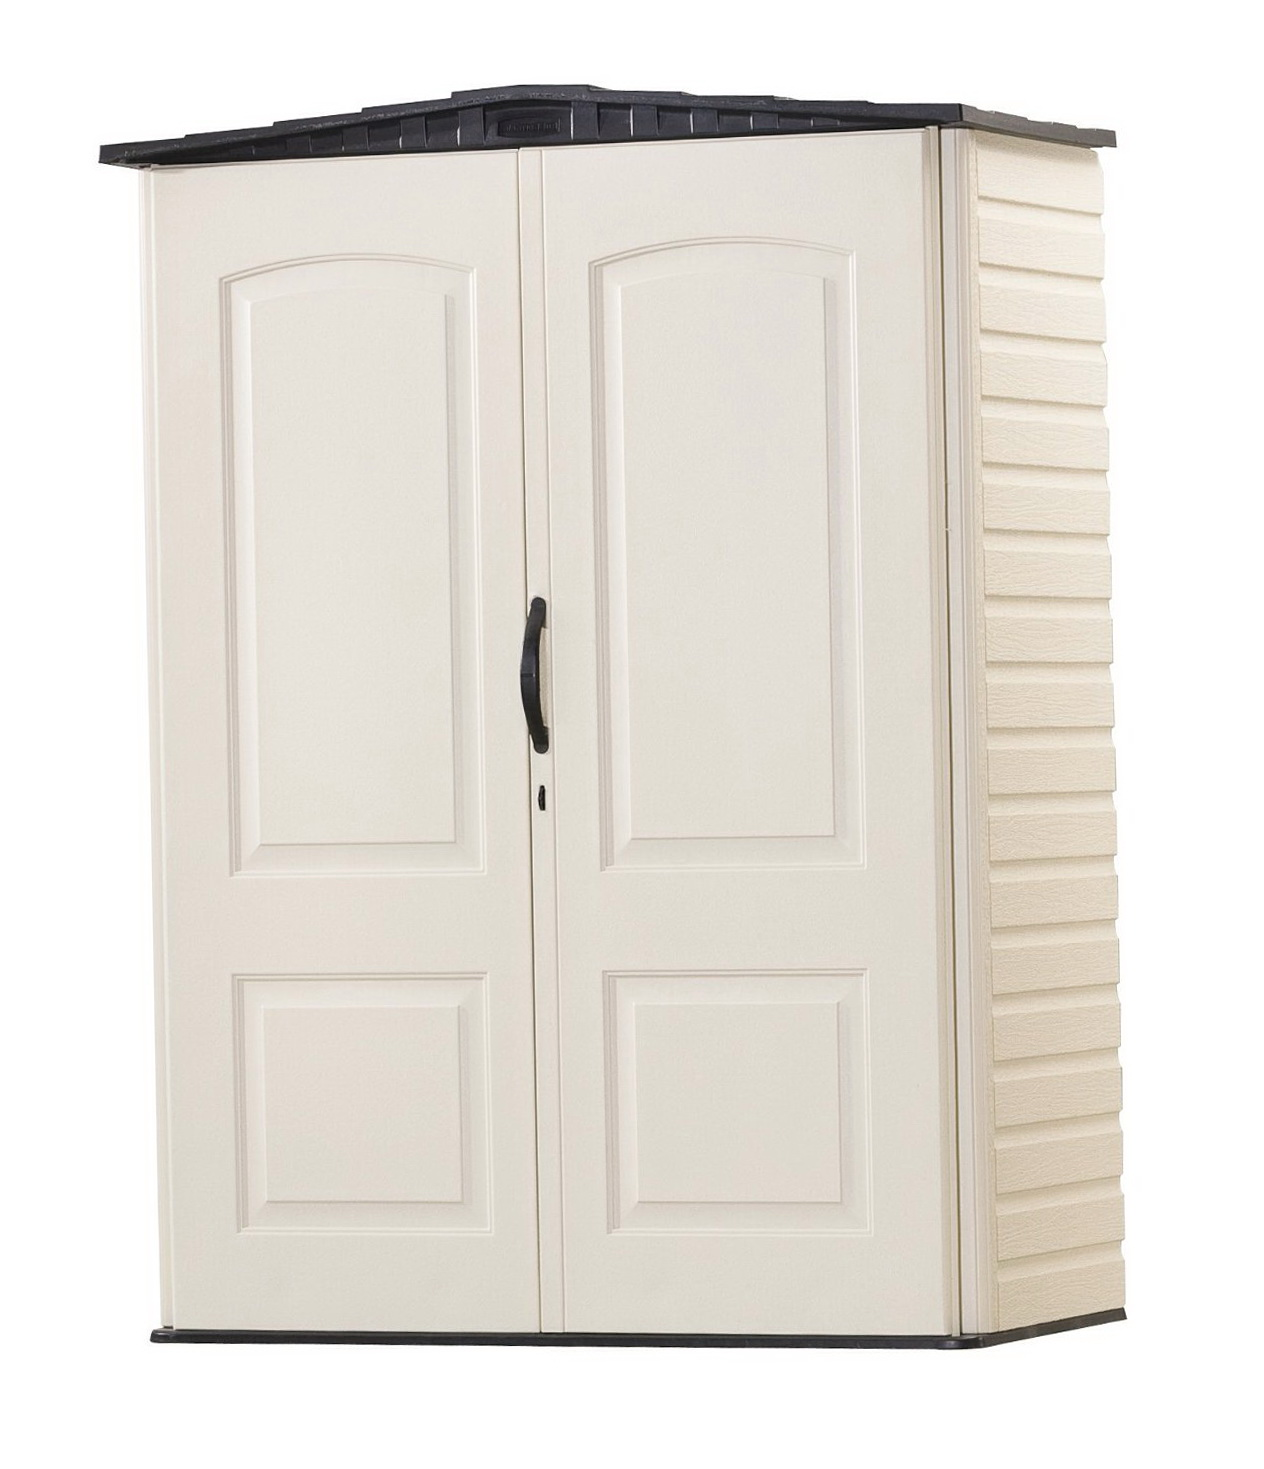 Rubbermaid Tall Storage Cabinet